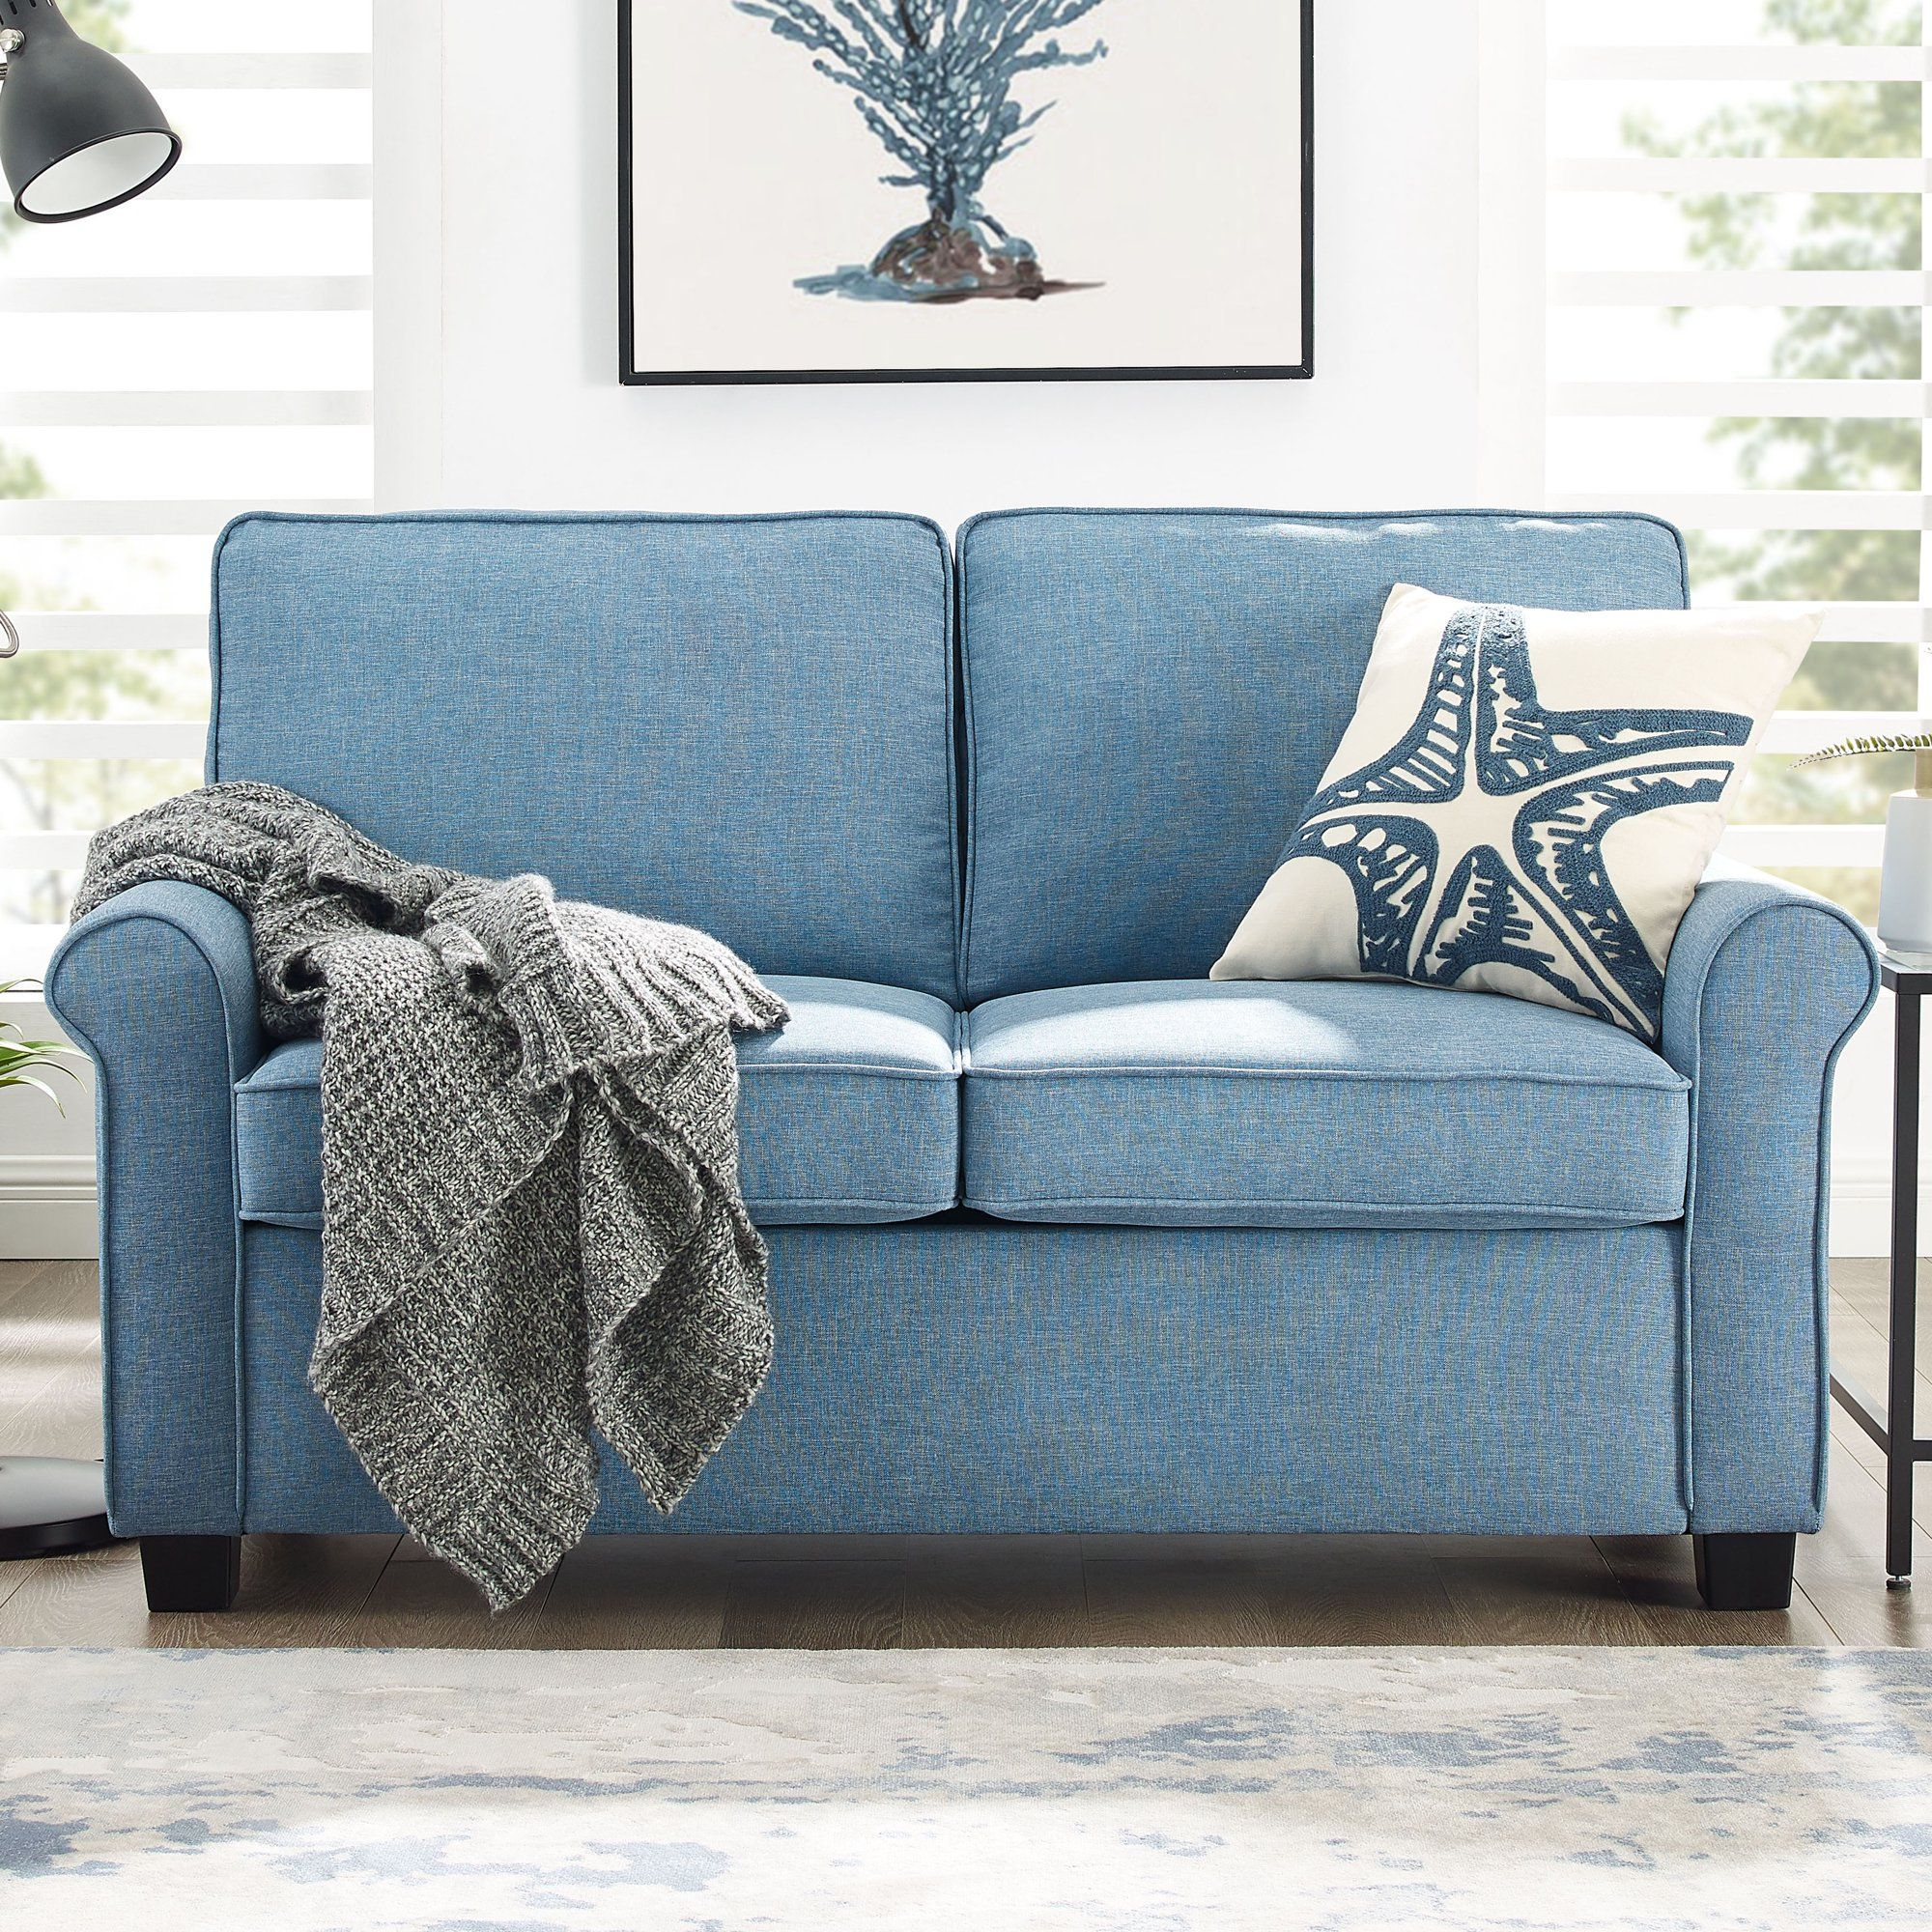 Pin on Colorful couch